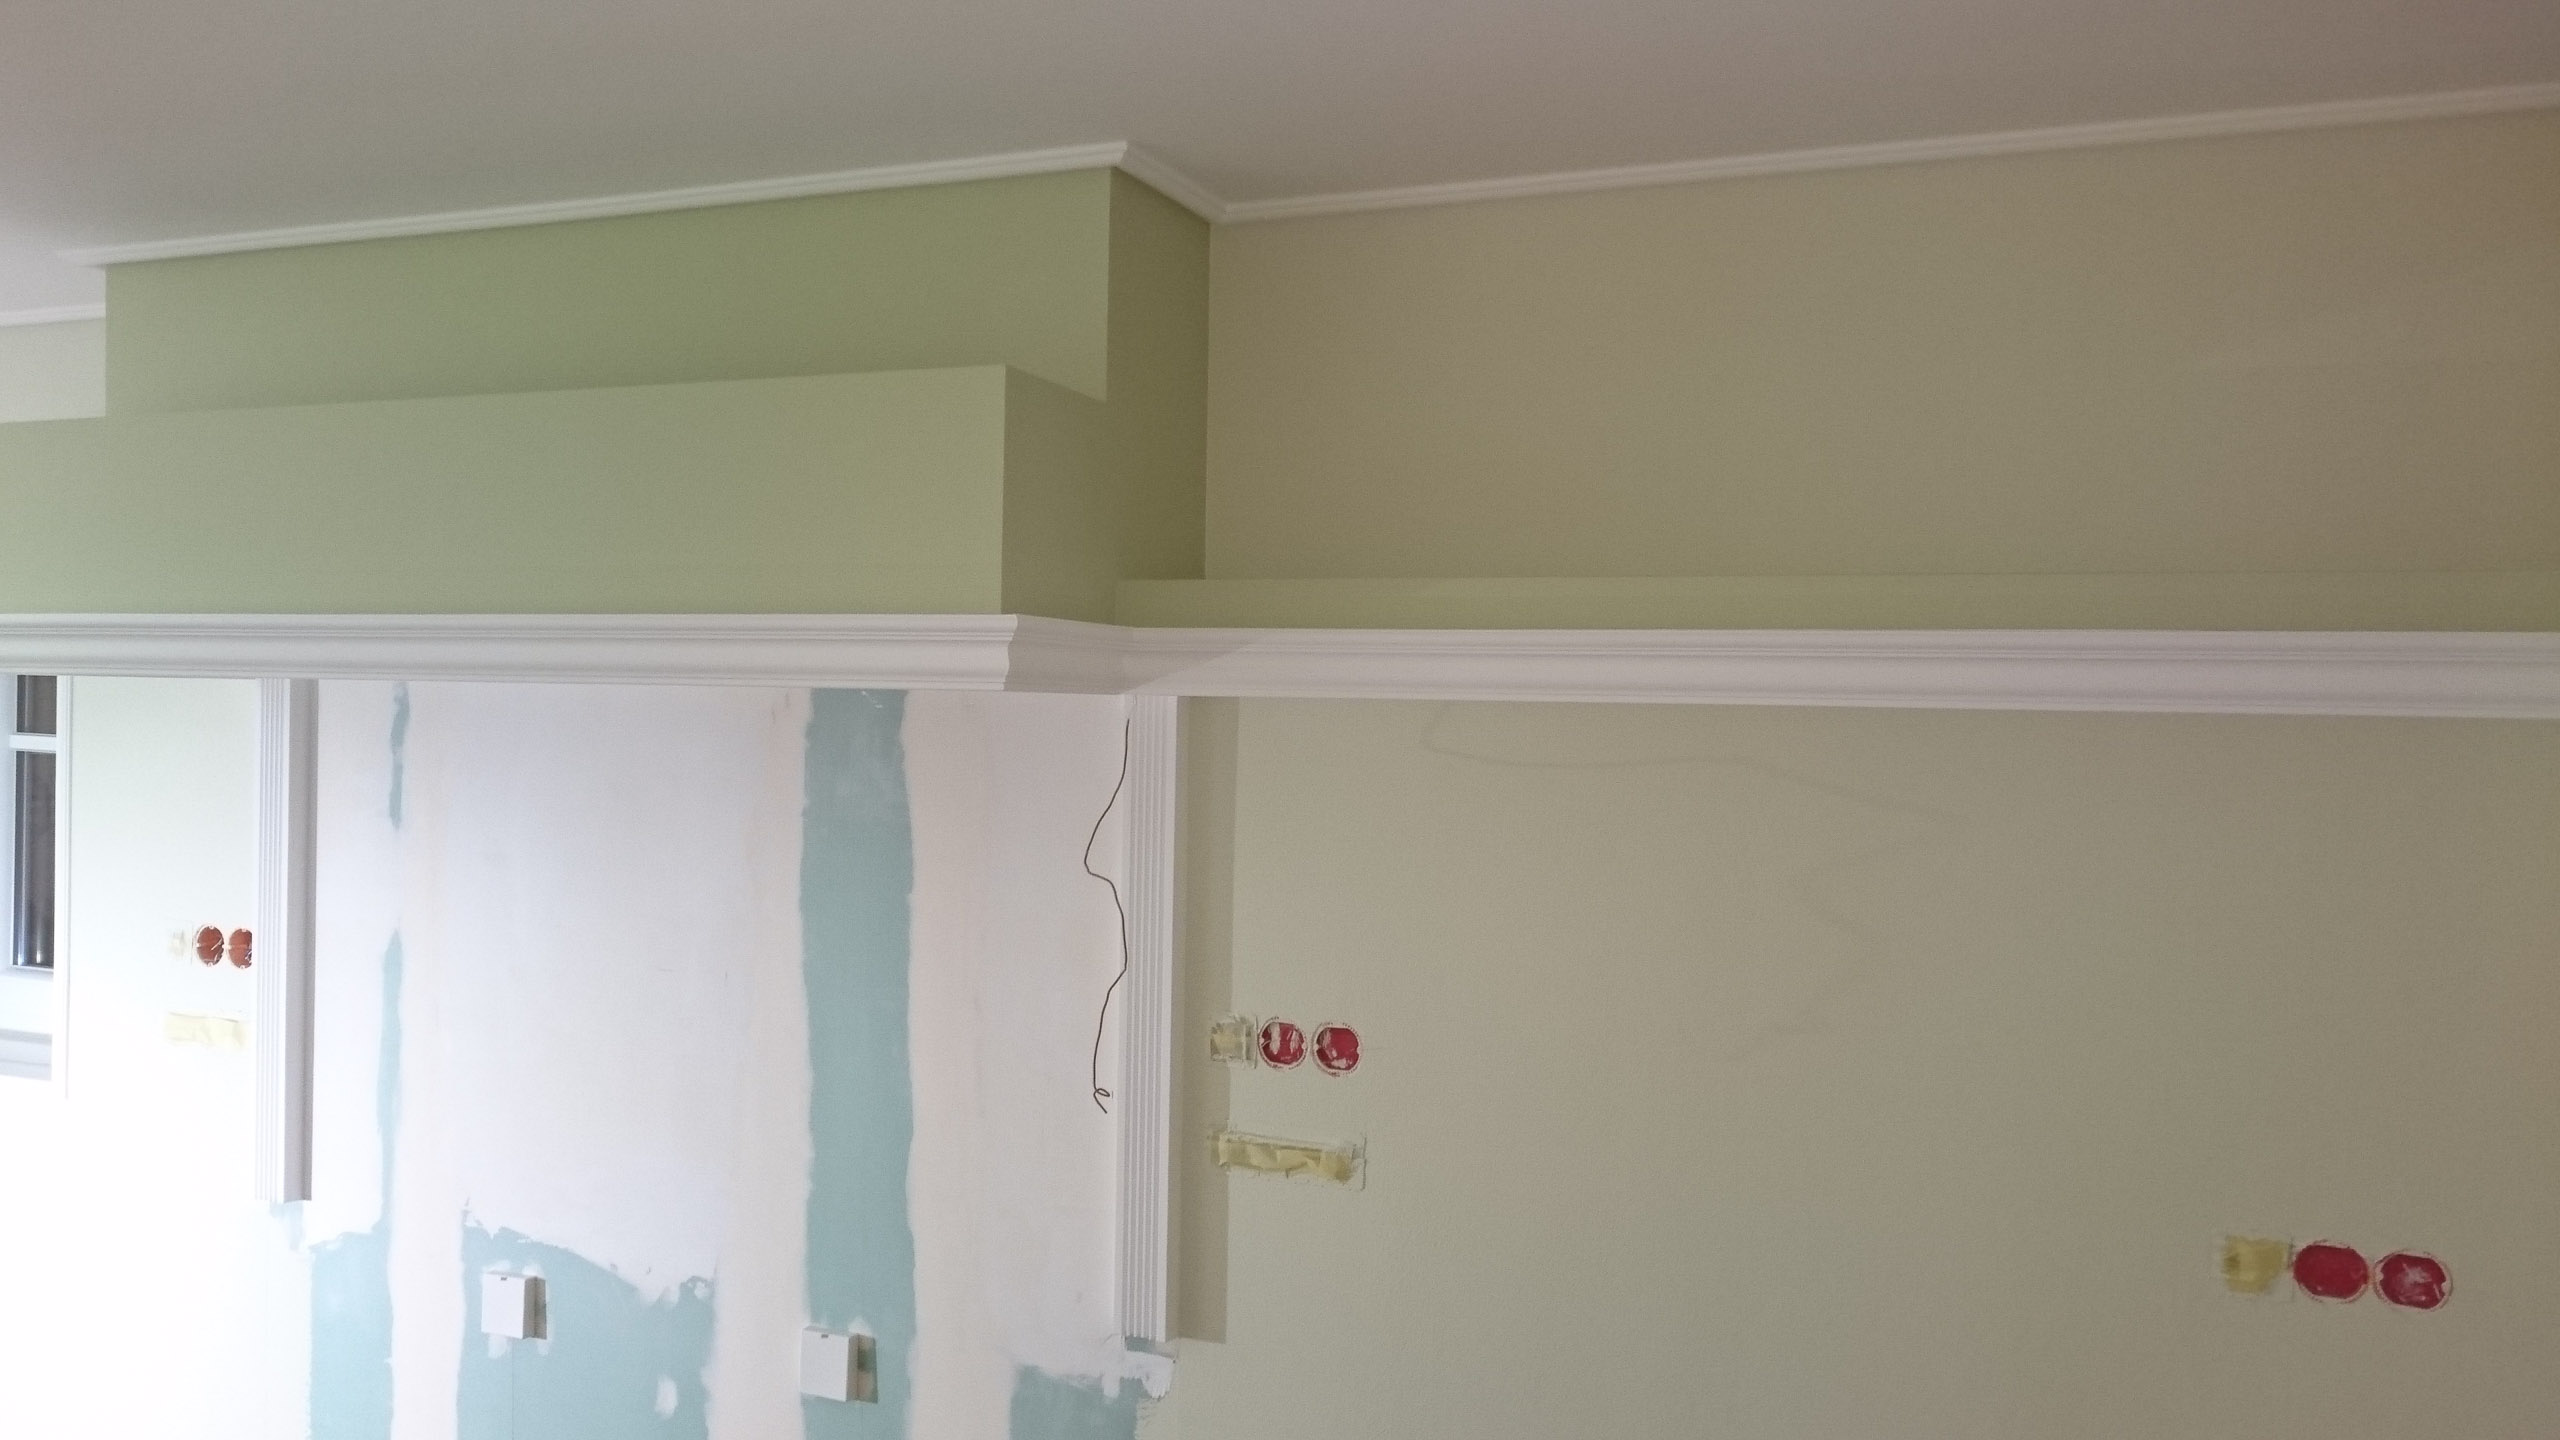 Planking The Drywall Construction And Painting Ikea Kitchen